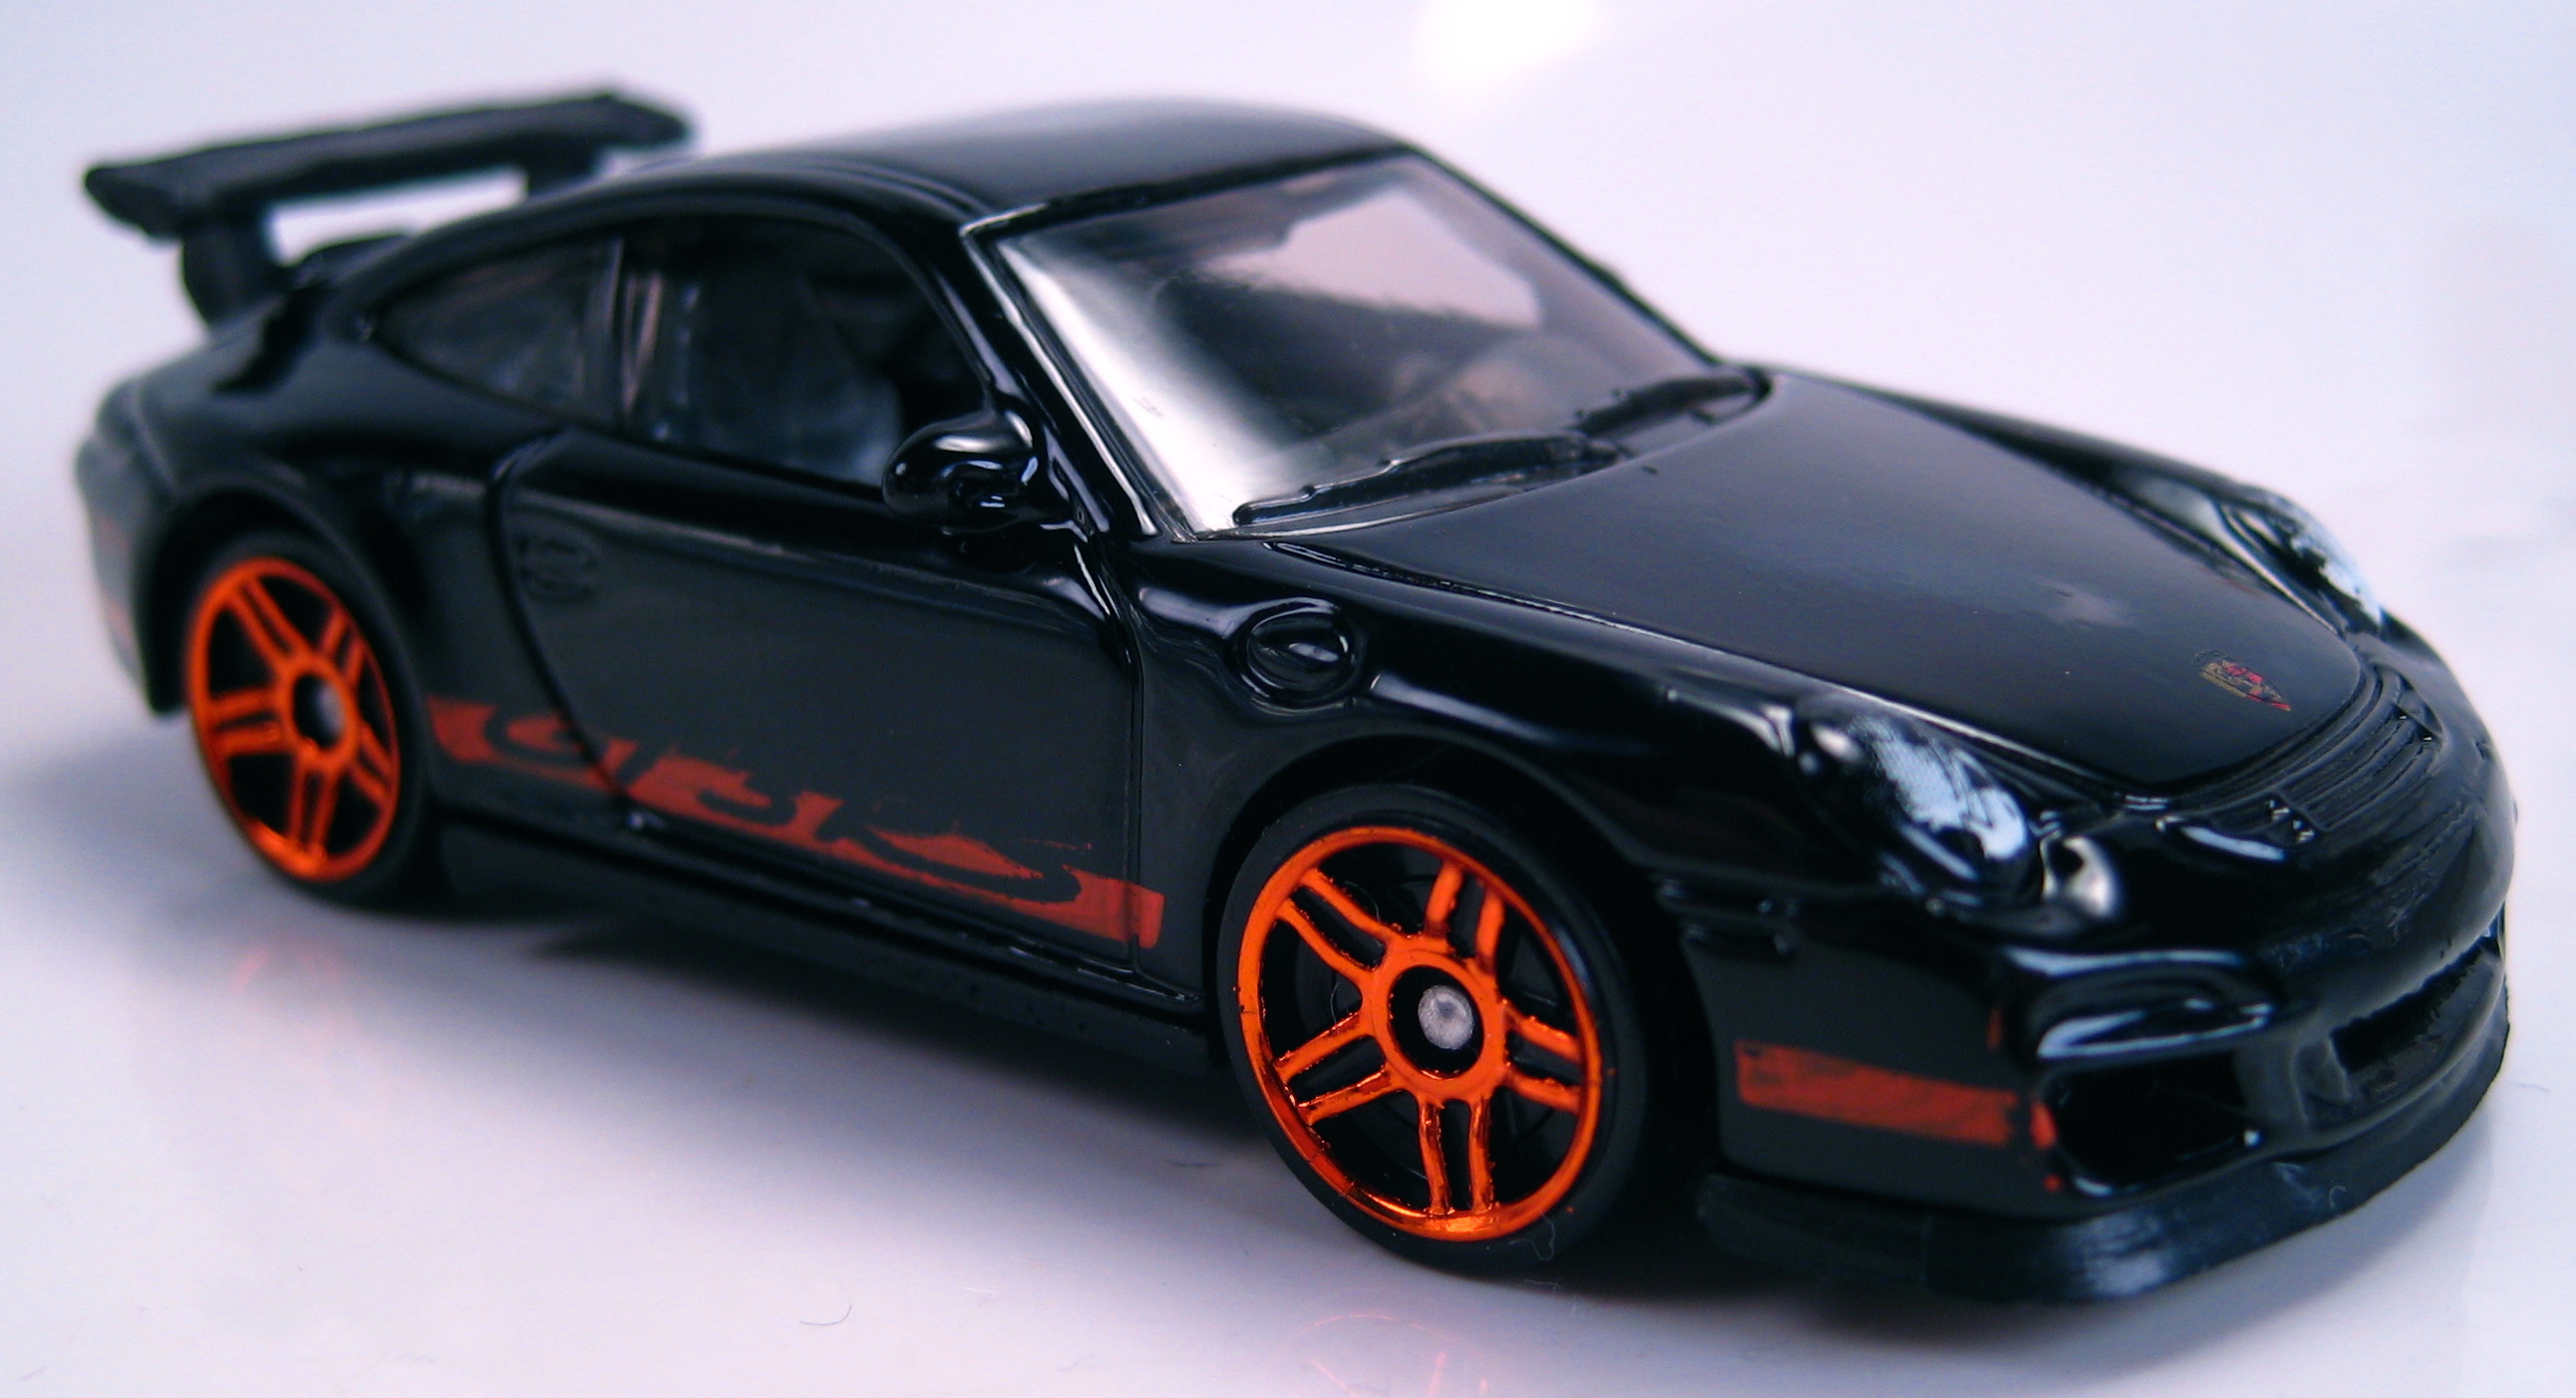 Porsche 911 GT3 RS | Hot Wheels Wiki | FANDOM powered by Wikia